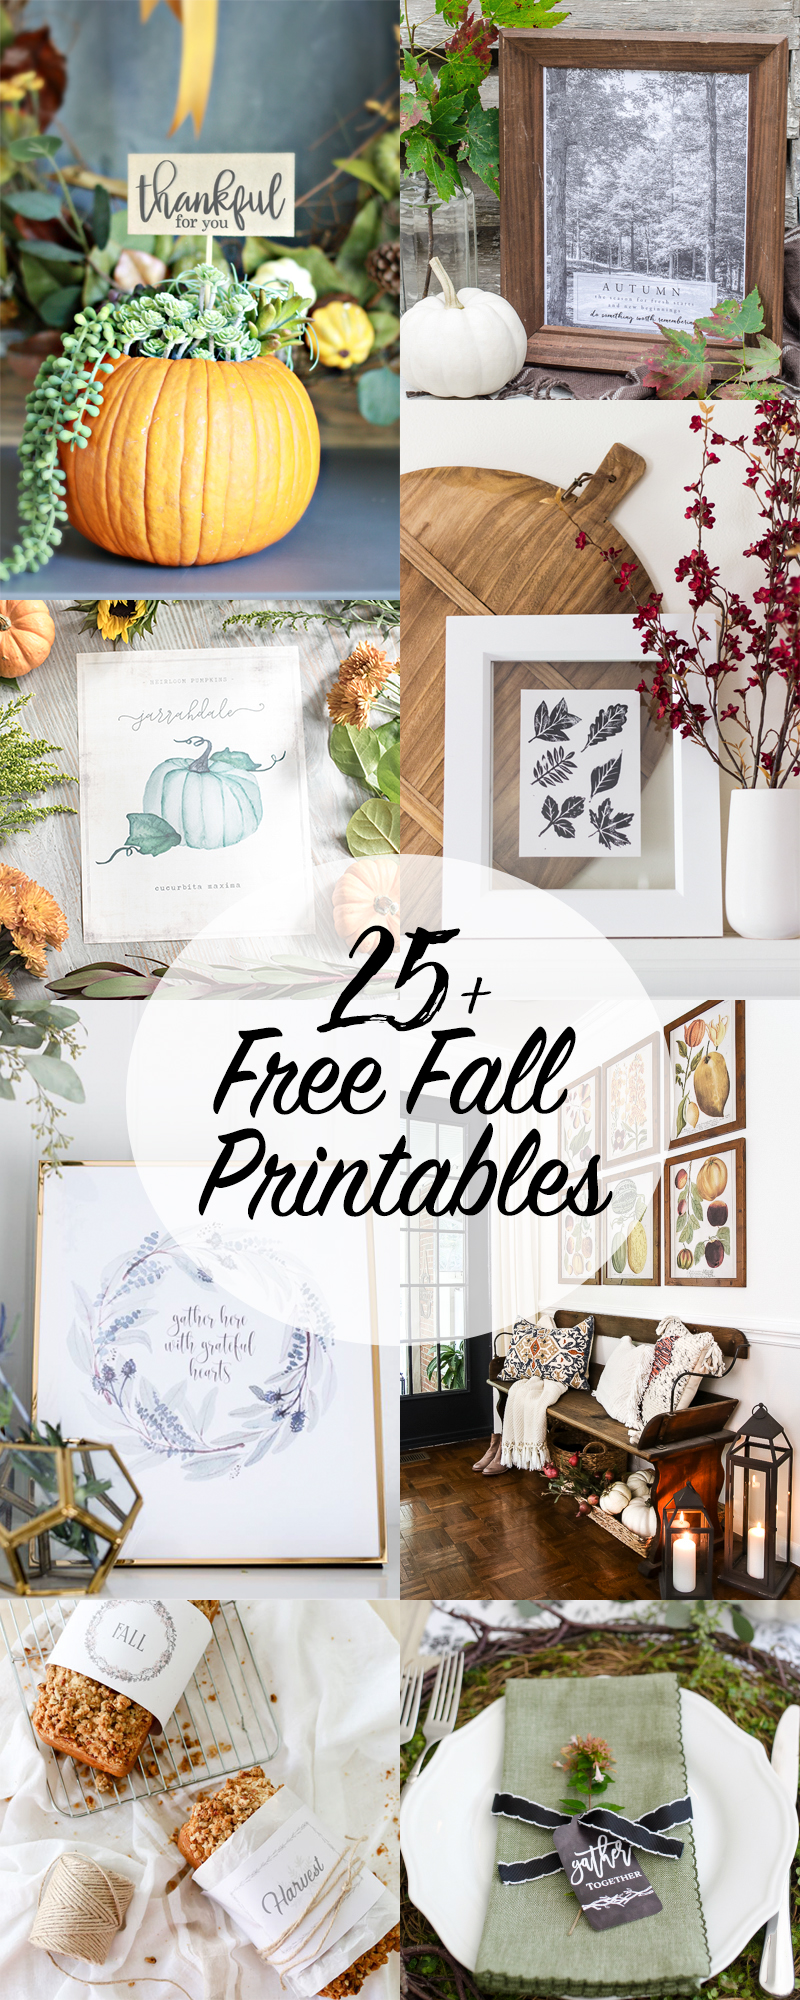 More than 25 gorgeous FREE fall printables to choose from!